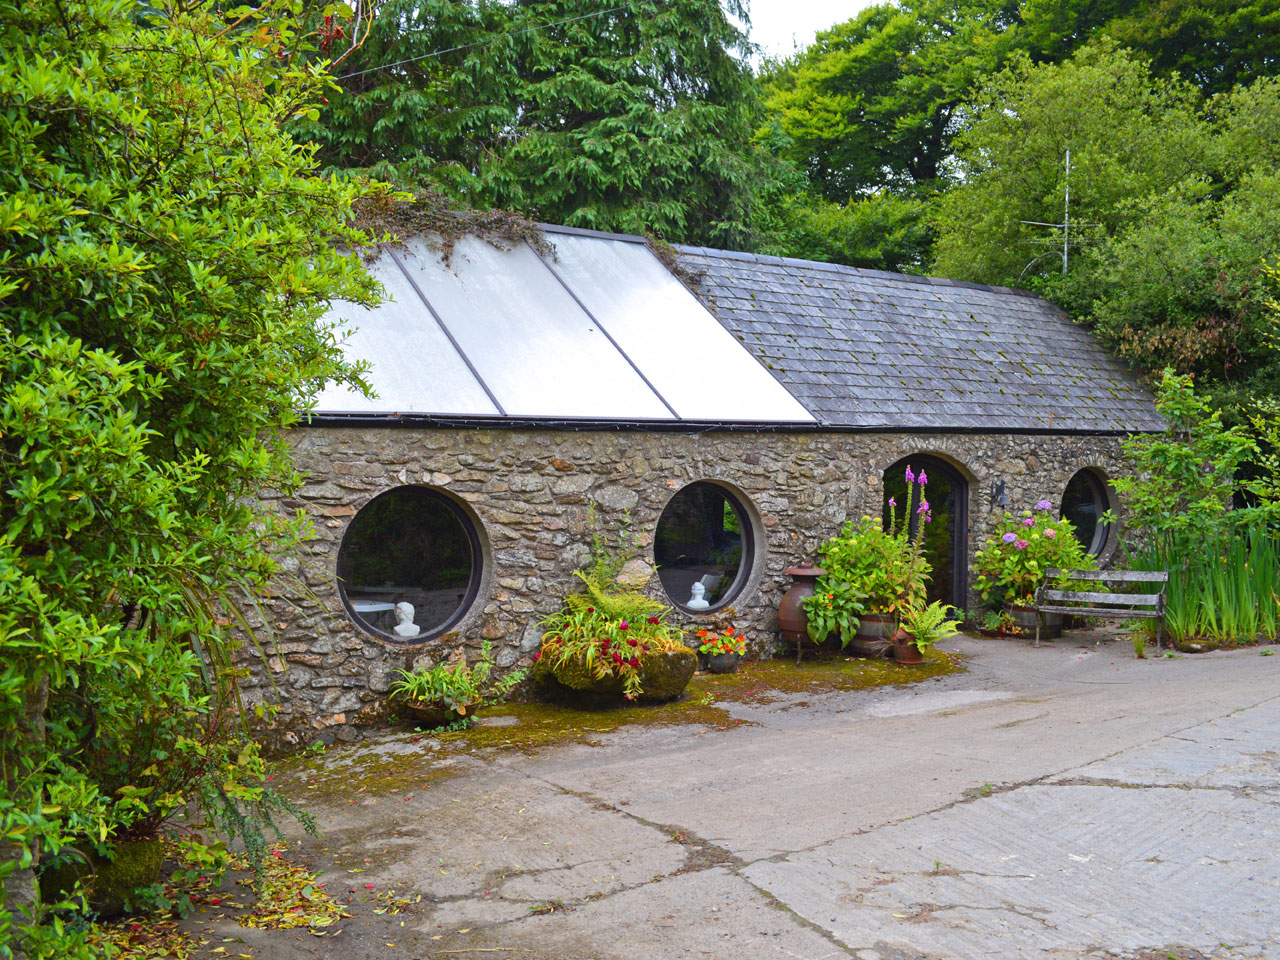 Irish Country Farmhouse Accommodation, Co Kilkenny, Ireland | Cullintra House offers guests facilities in the converted barn | a space to read and relax